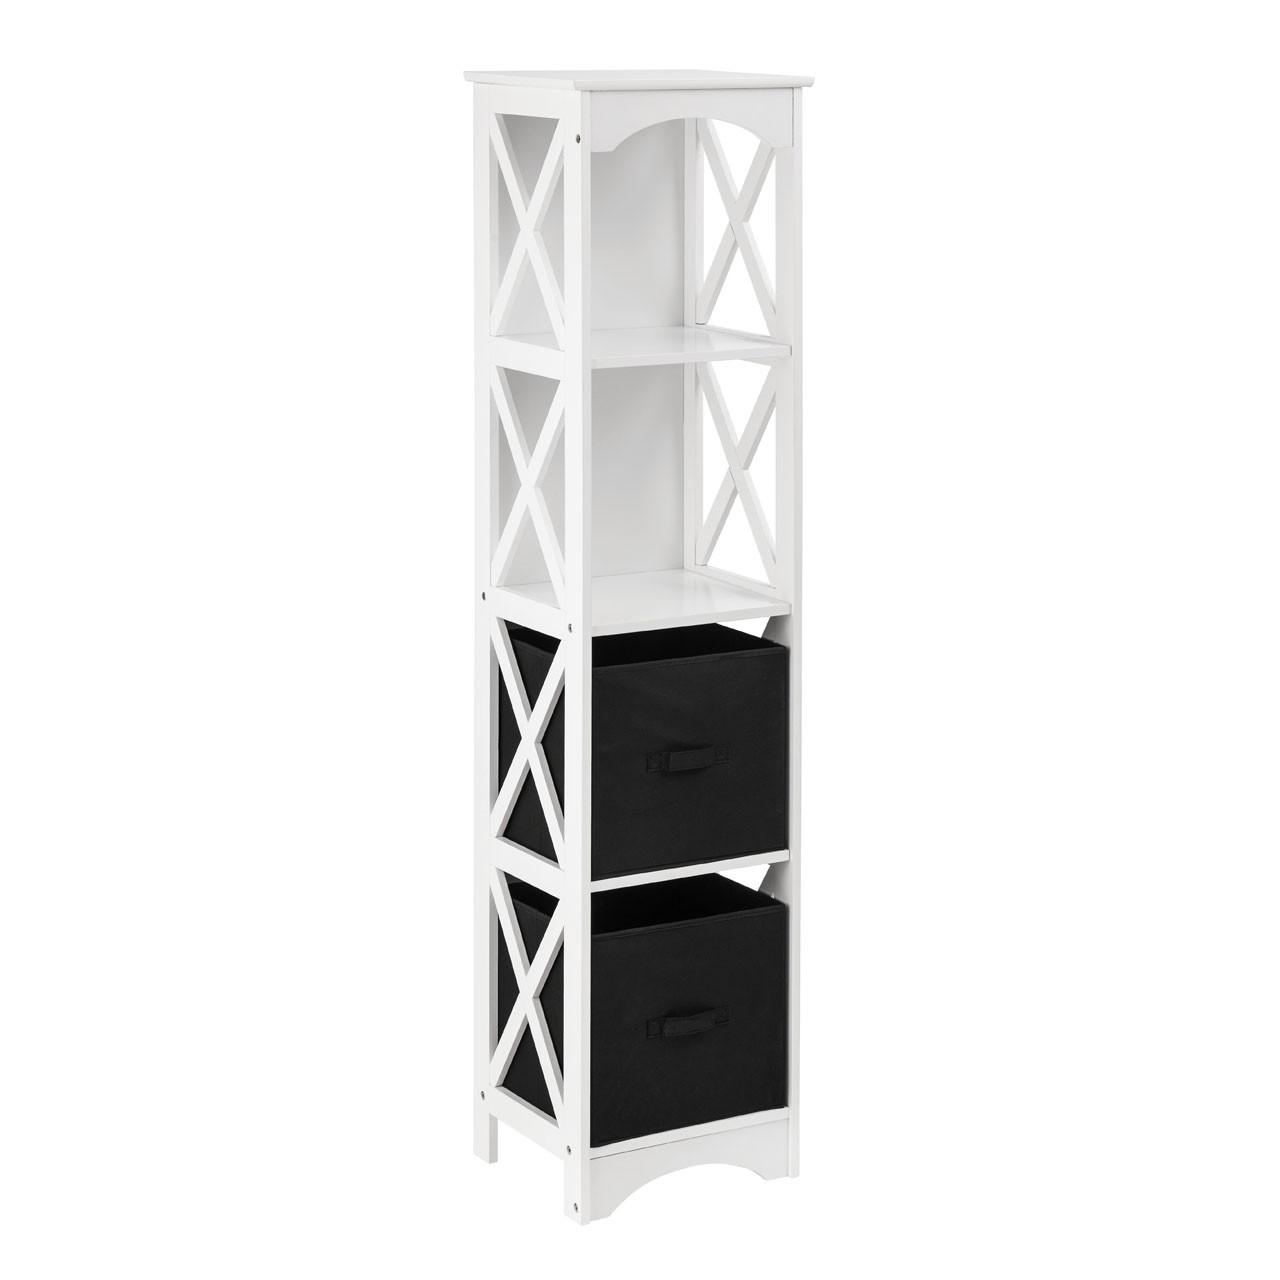 Prime Furnishing 4-Tier Storage Unit, White/Black